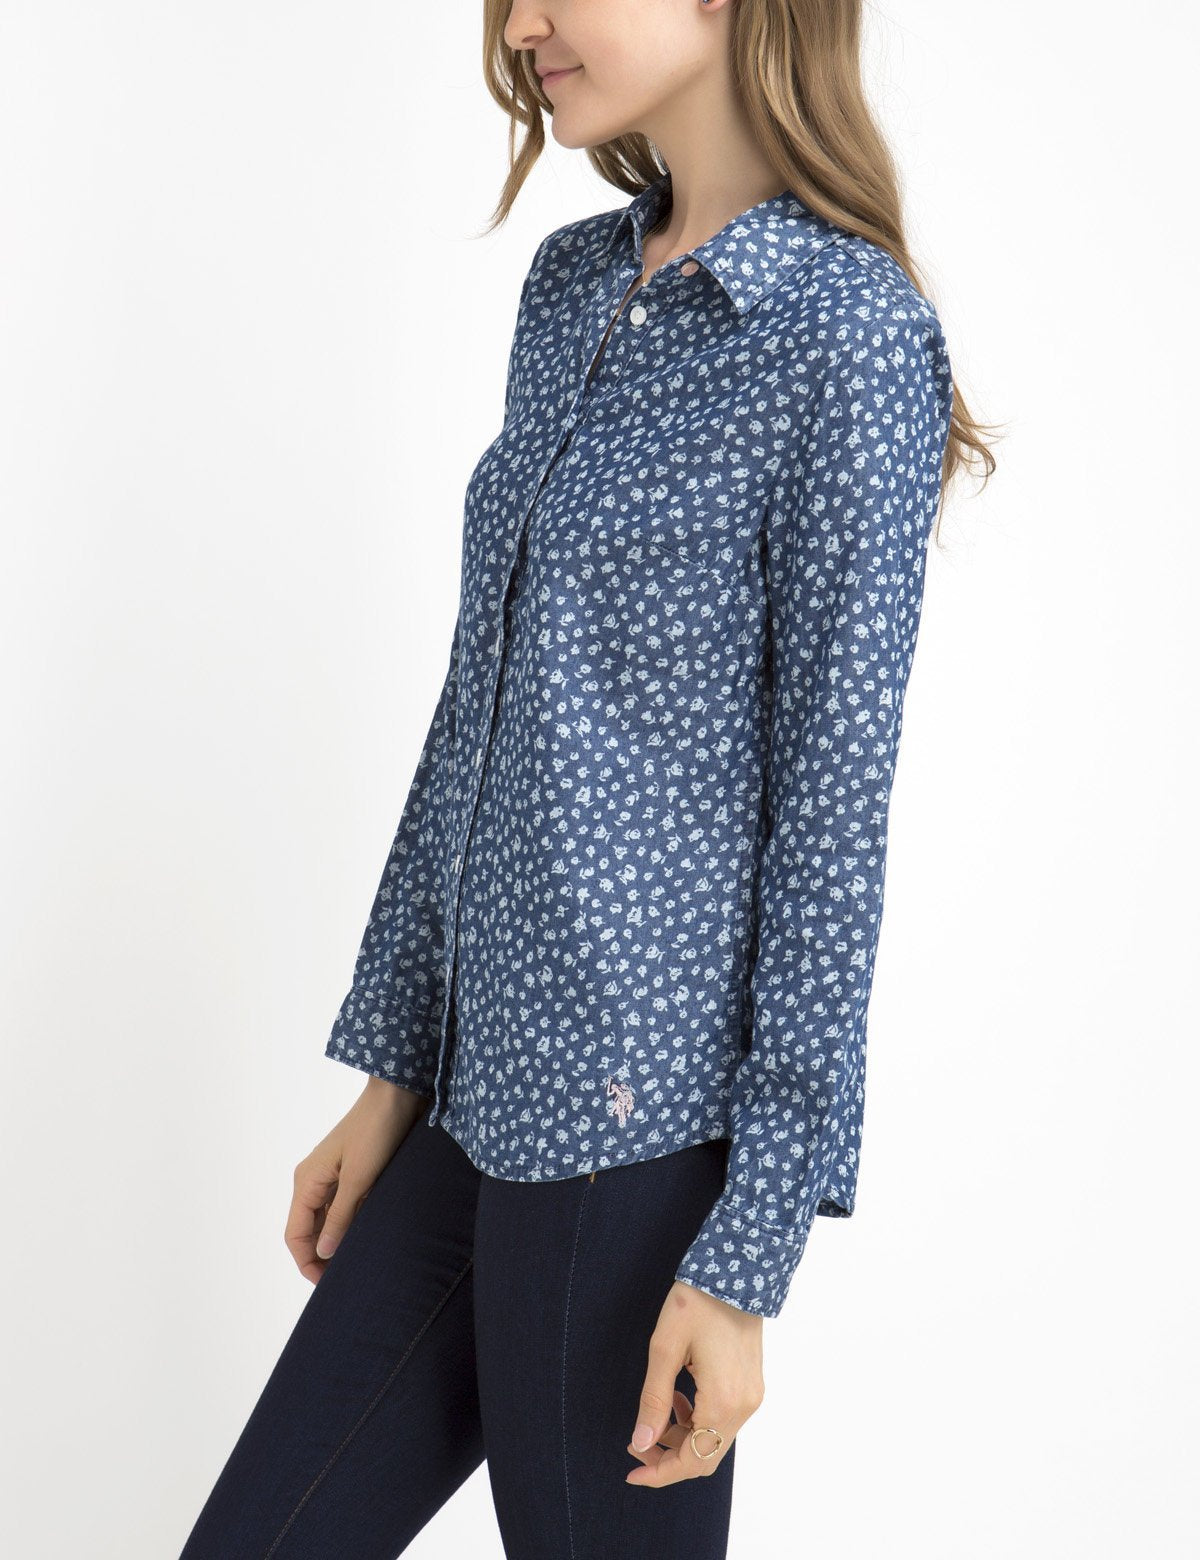 BOTANICAL LIGHTWEIGHT CHAMBRAY SHIRT - U.S. Polo Assn.